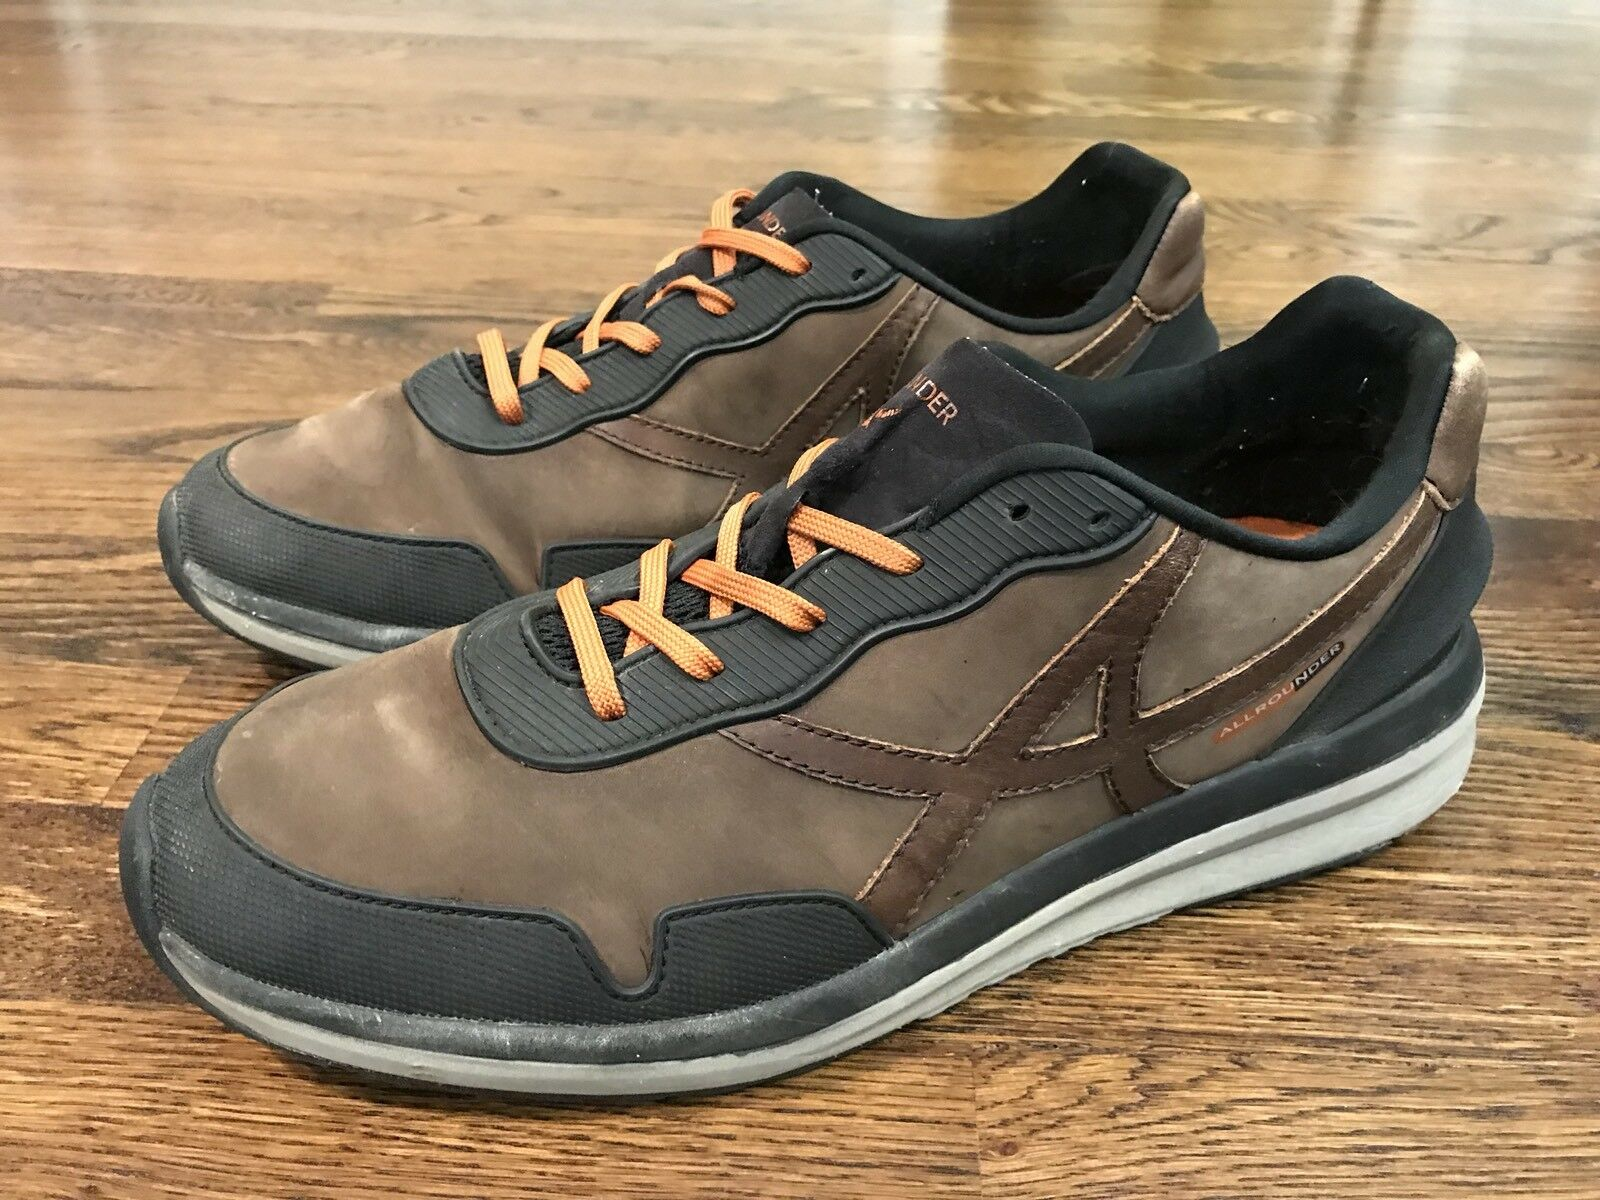 Allrounder Soft Brown Speed Men's Size 12 Sneaker Shoes